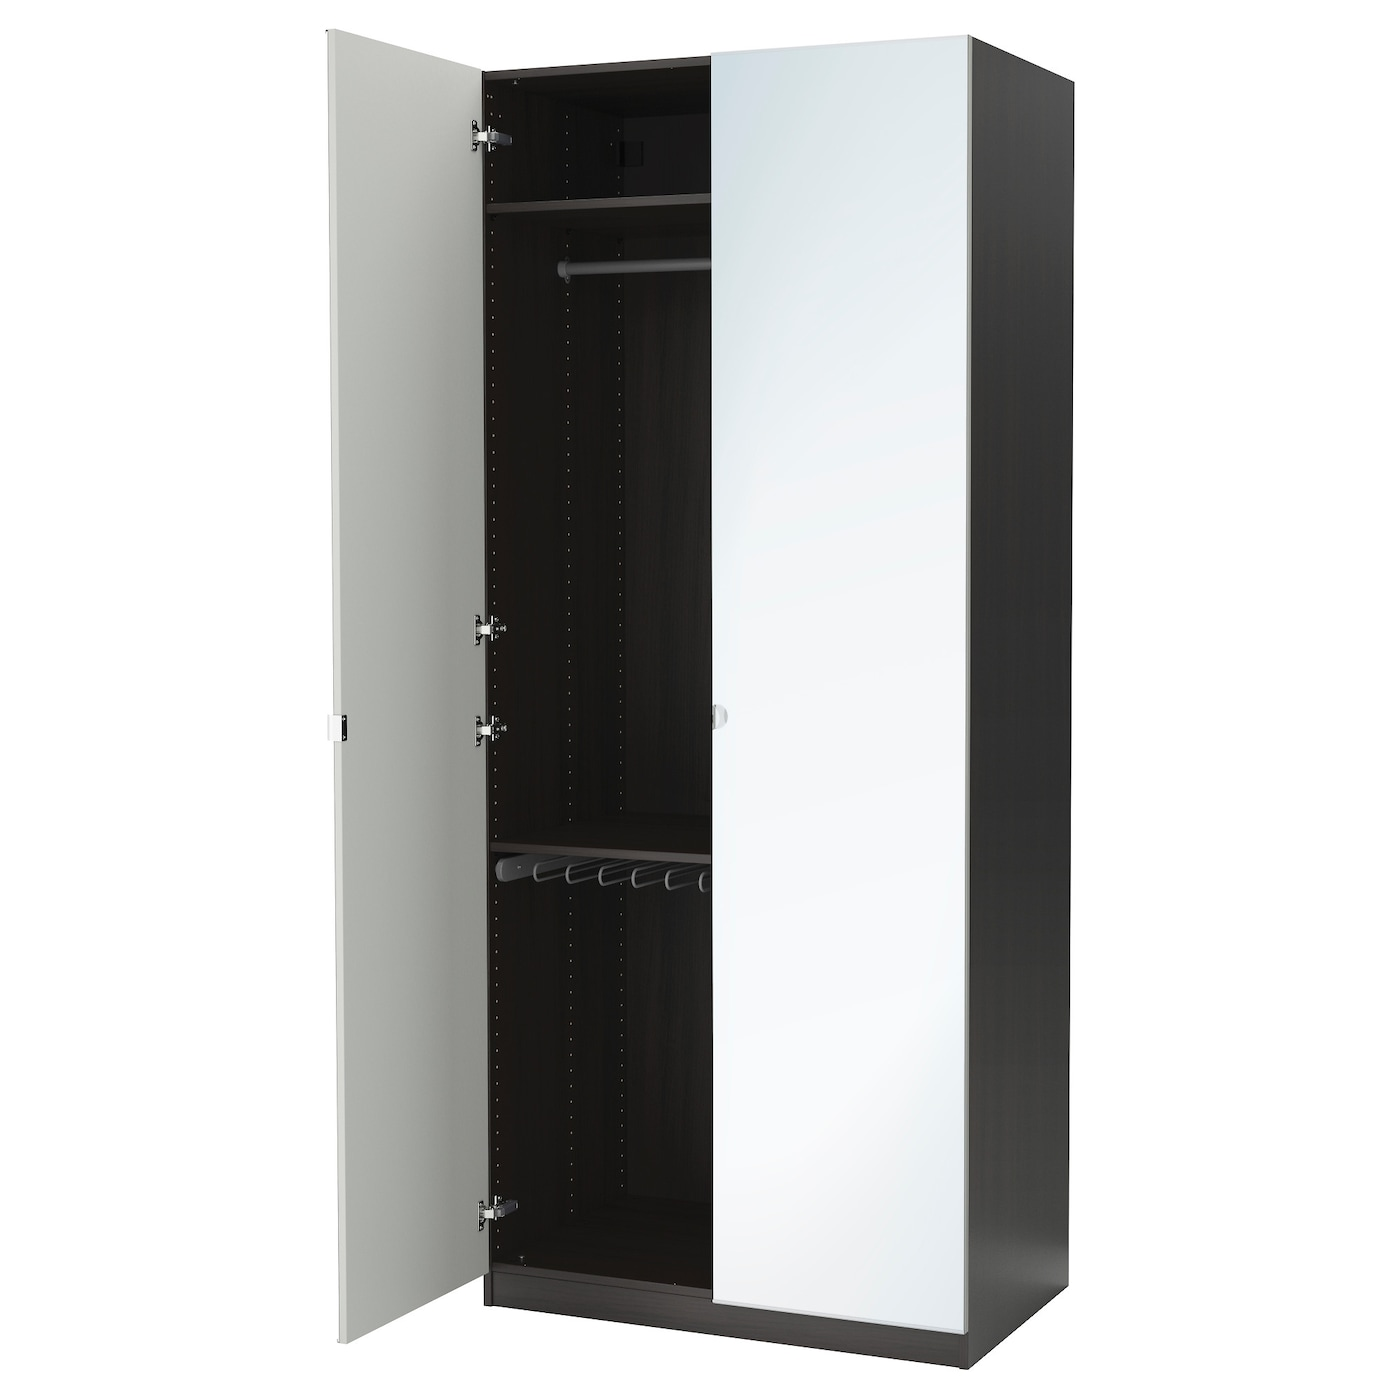 Pax wardrobe black brown vikedal mirror glass 100x60x236 for Armoire porte coulissante miroir ikea